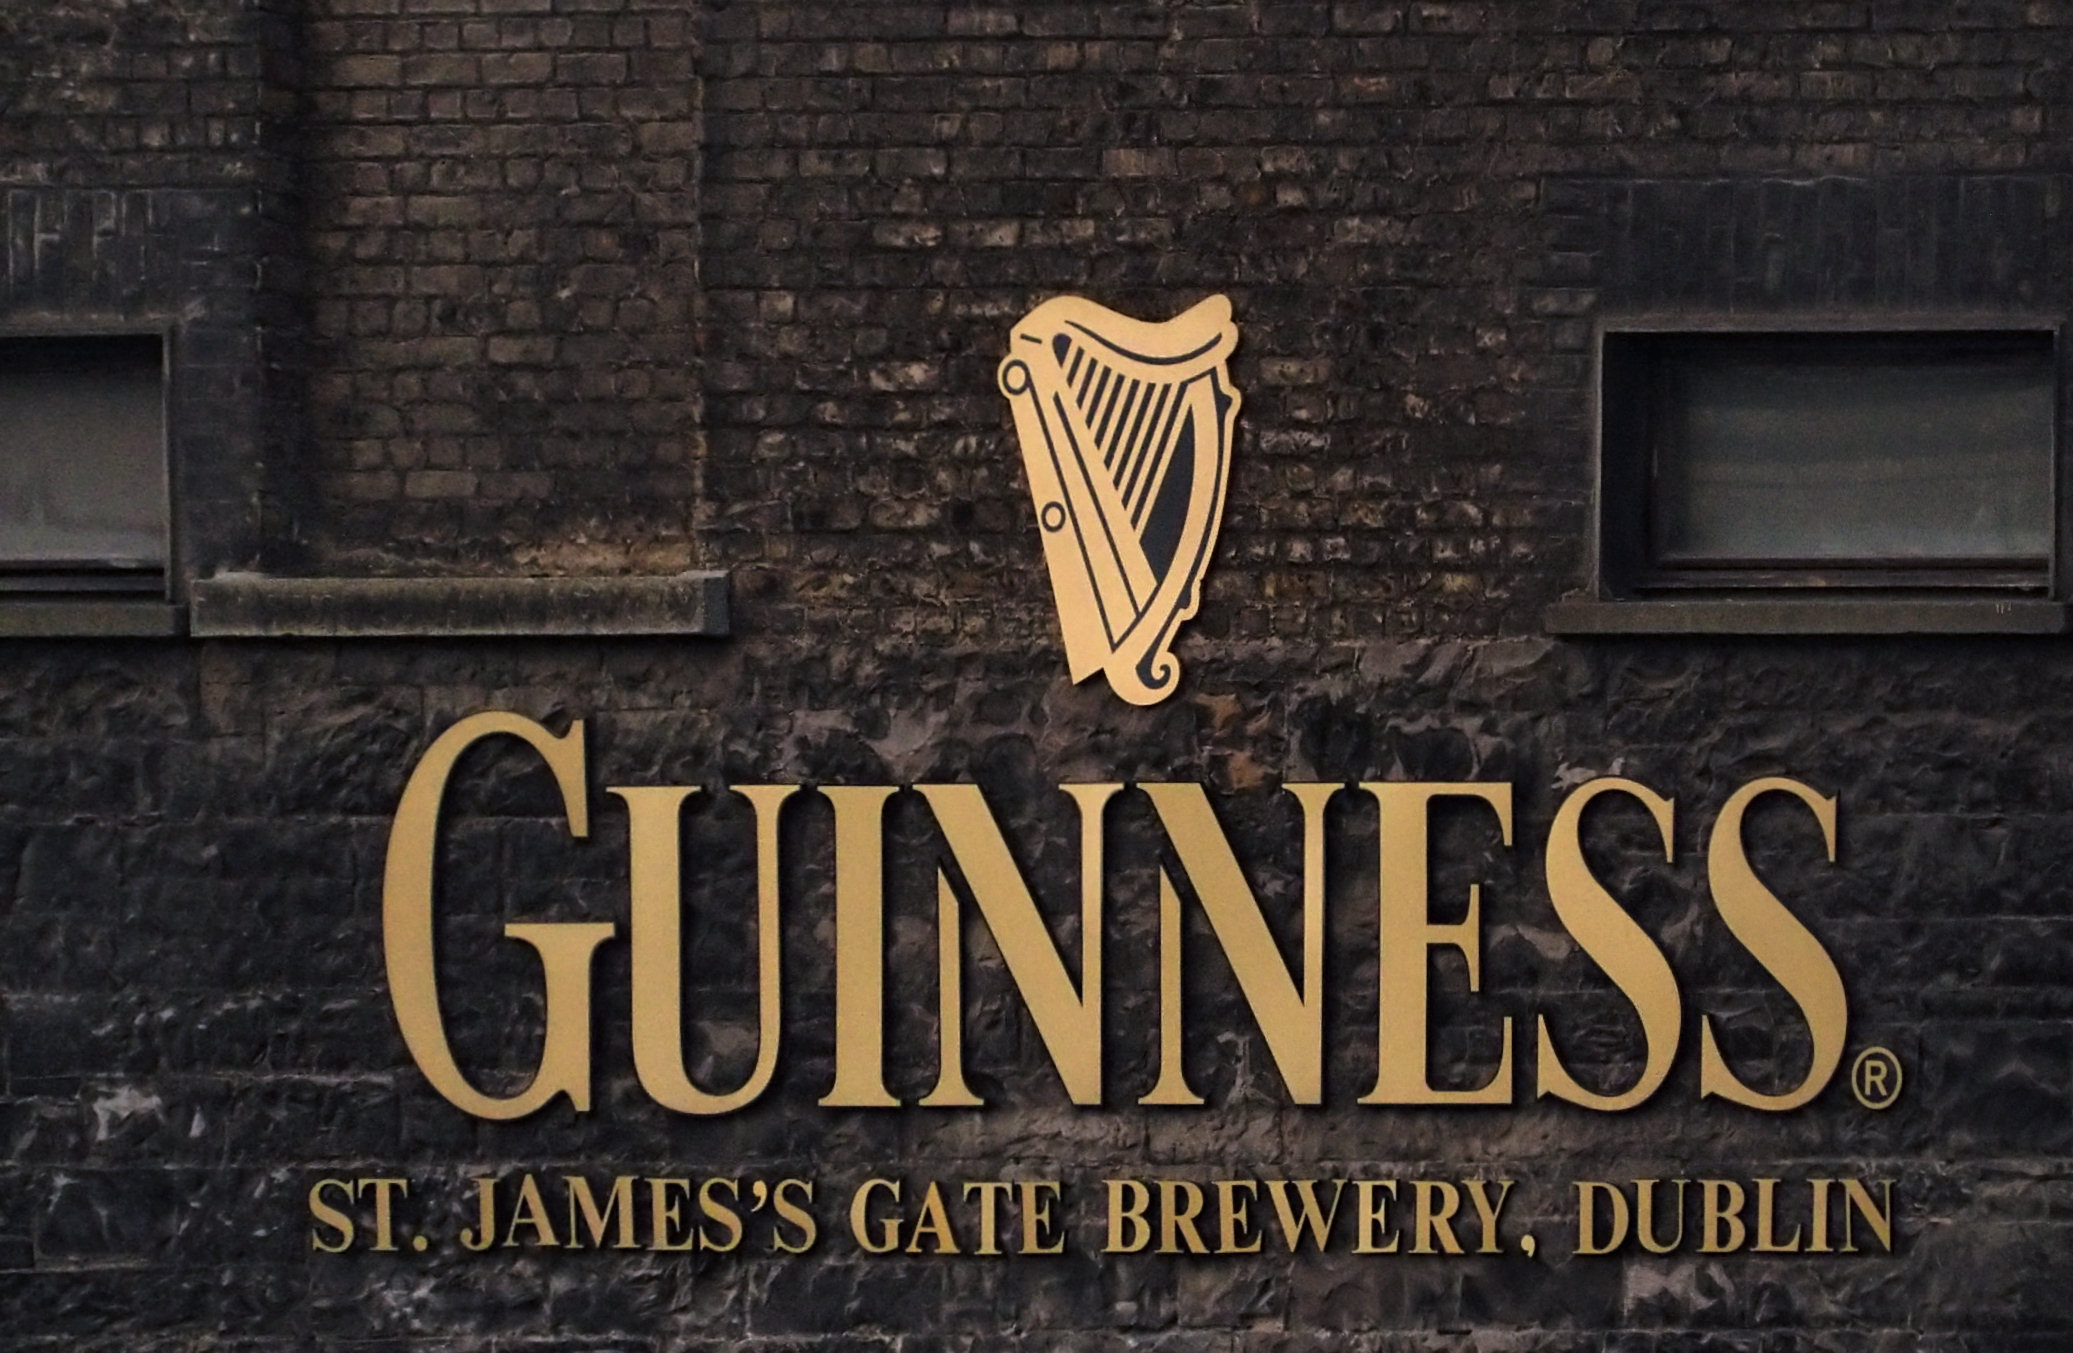 business info on arthur guiness Brief company history in 1759, guinness was founded in dublin, ireland arthur guinness, the founder, started out brewing dublin ale in a disused brewery.